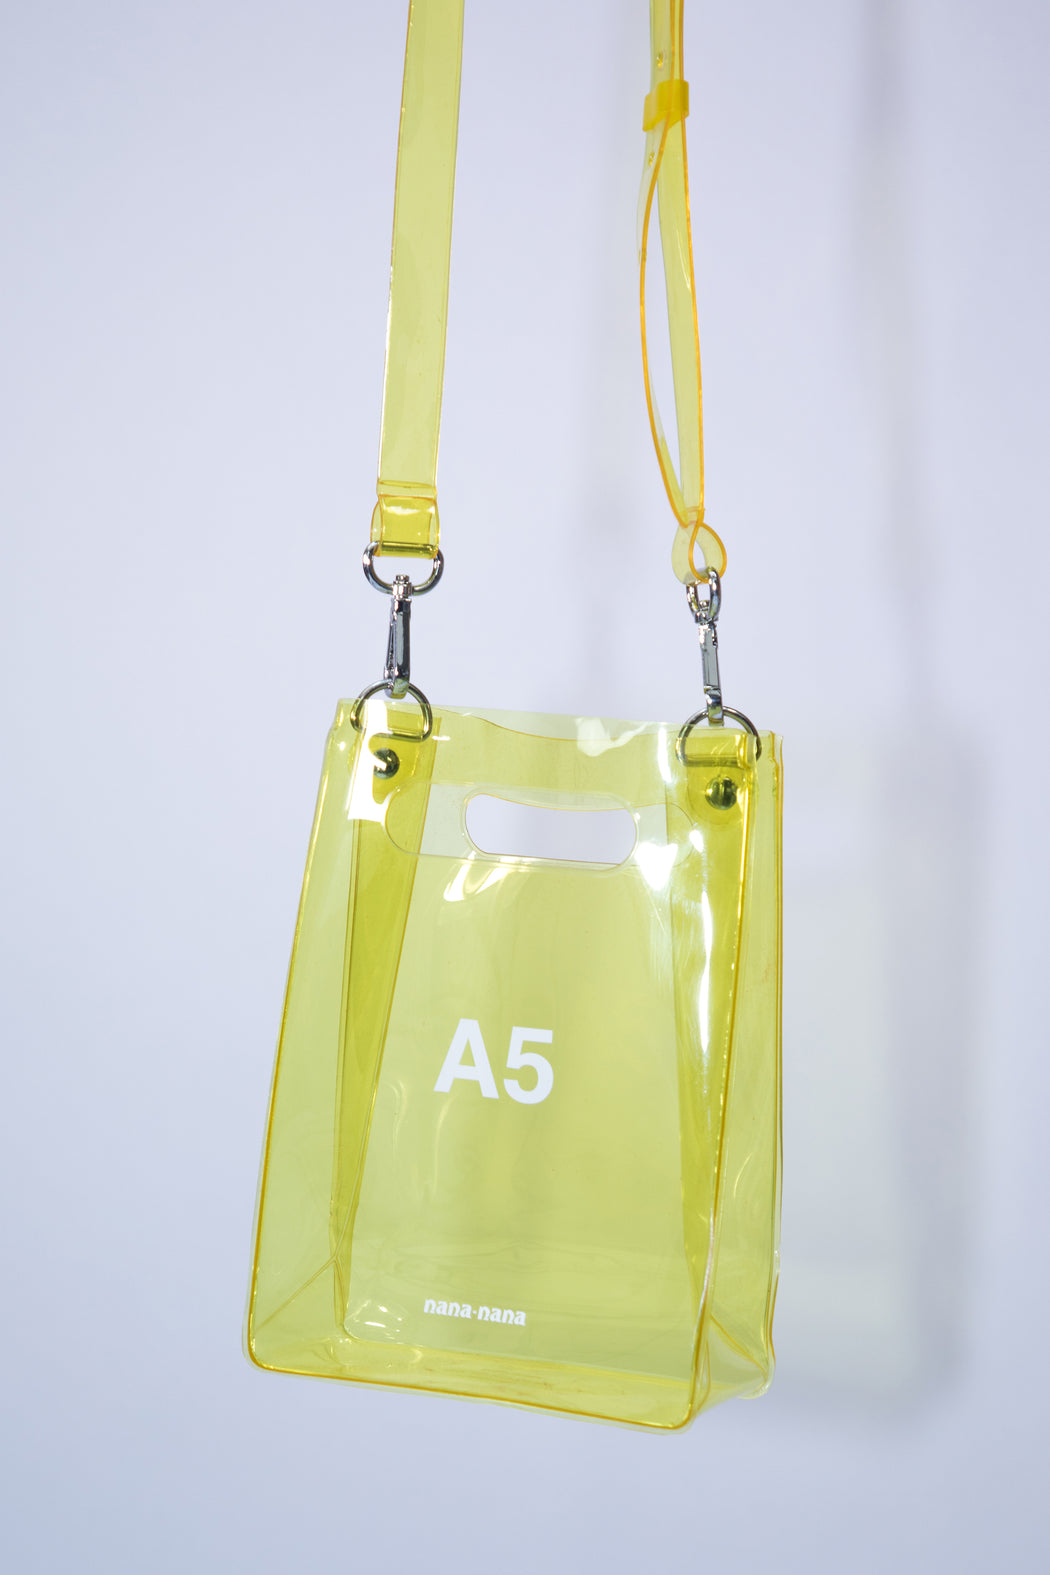 A5 Yellow Bag